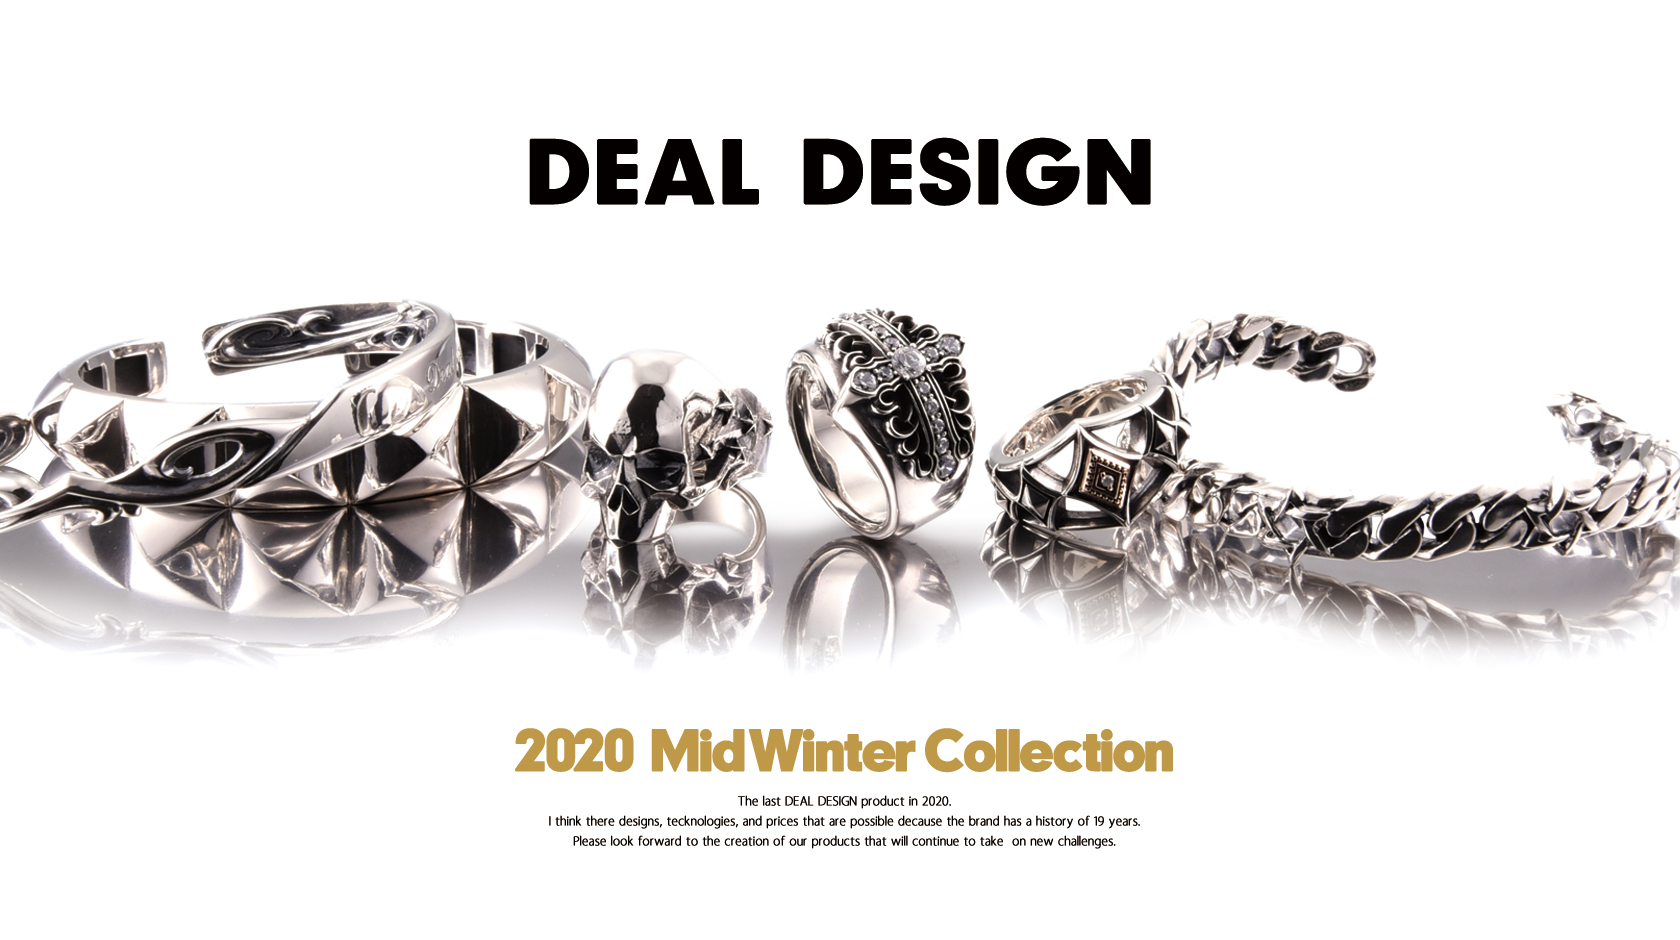 2020 MIDWINTER COLLECTION